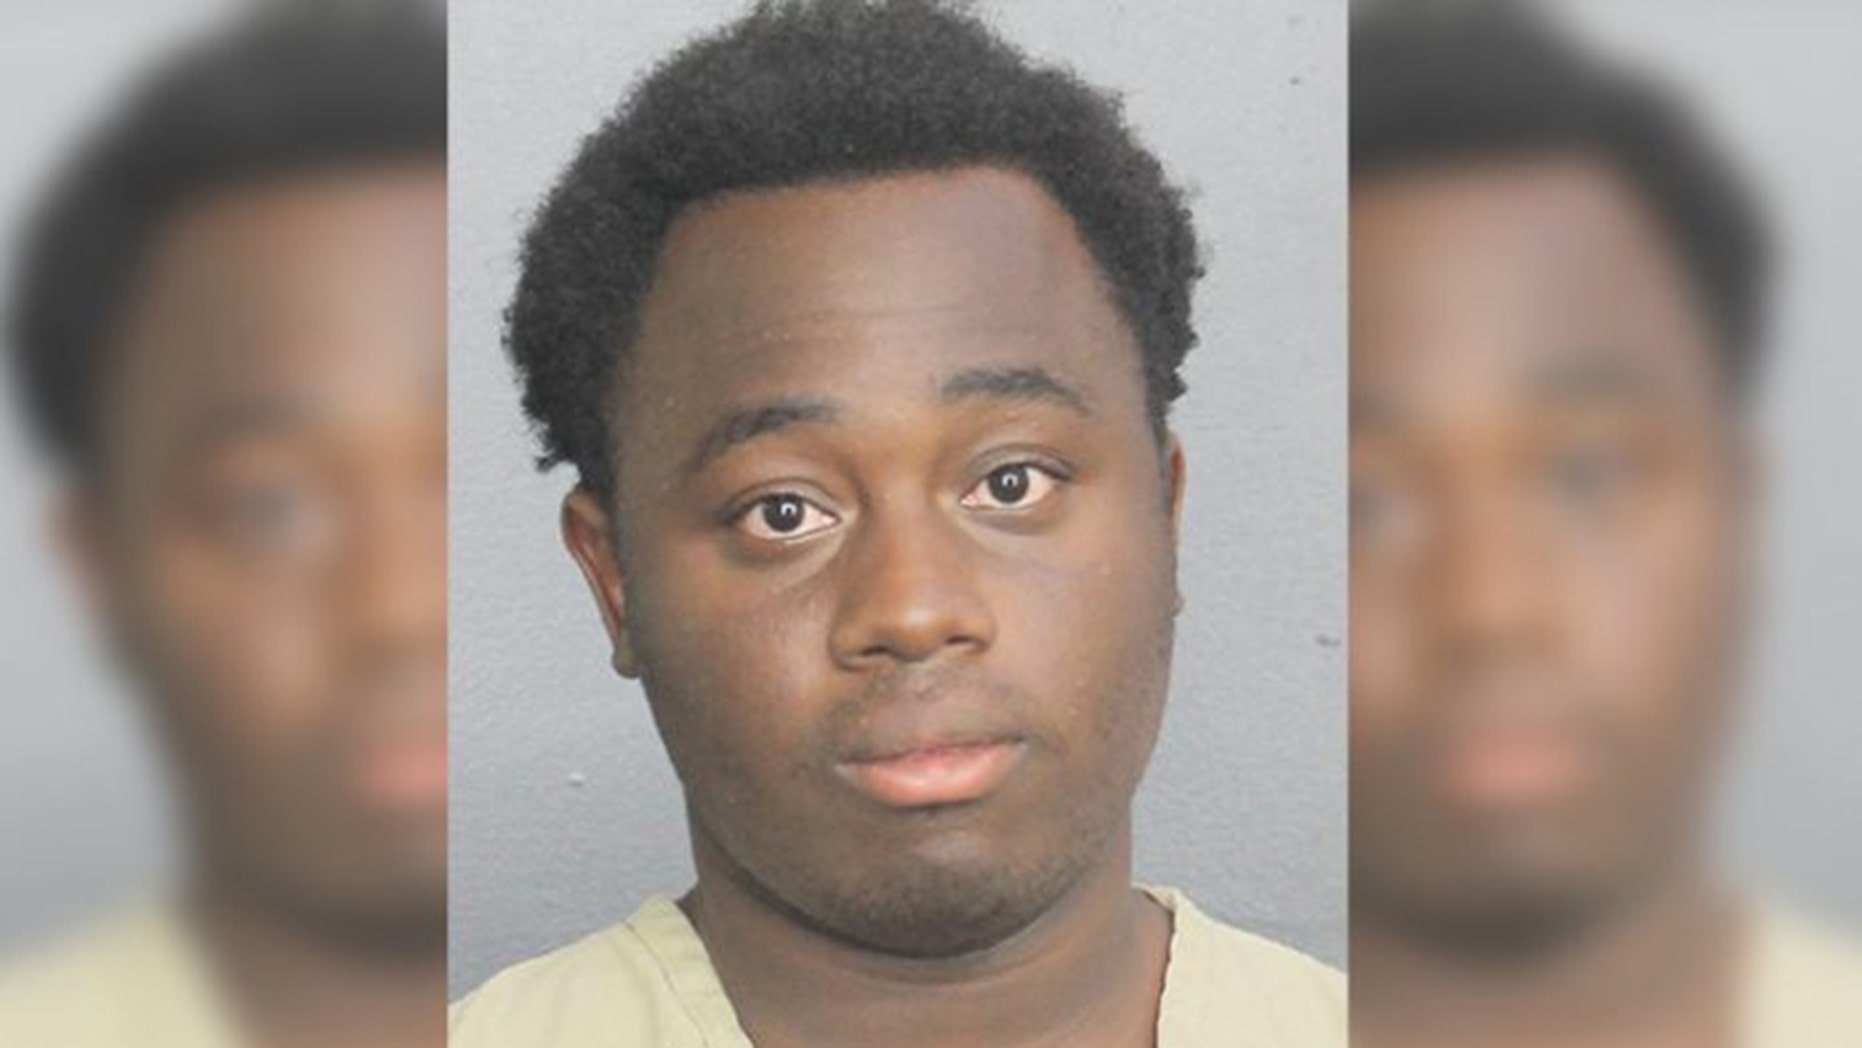 Mug shot for Tyrone Fields, 19, of Deerfield Beach, Fla.